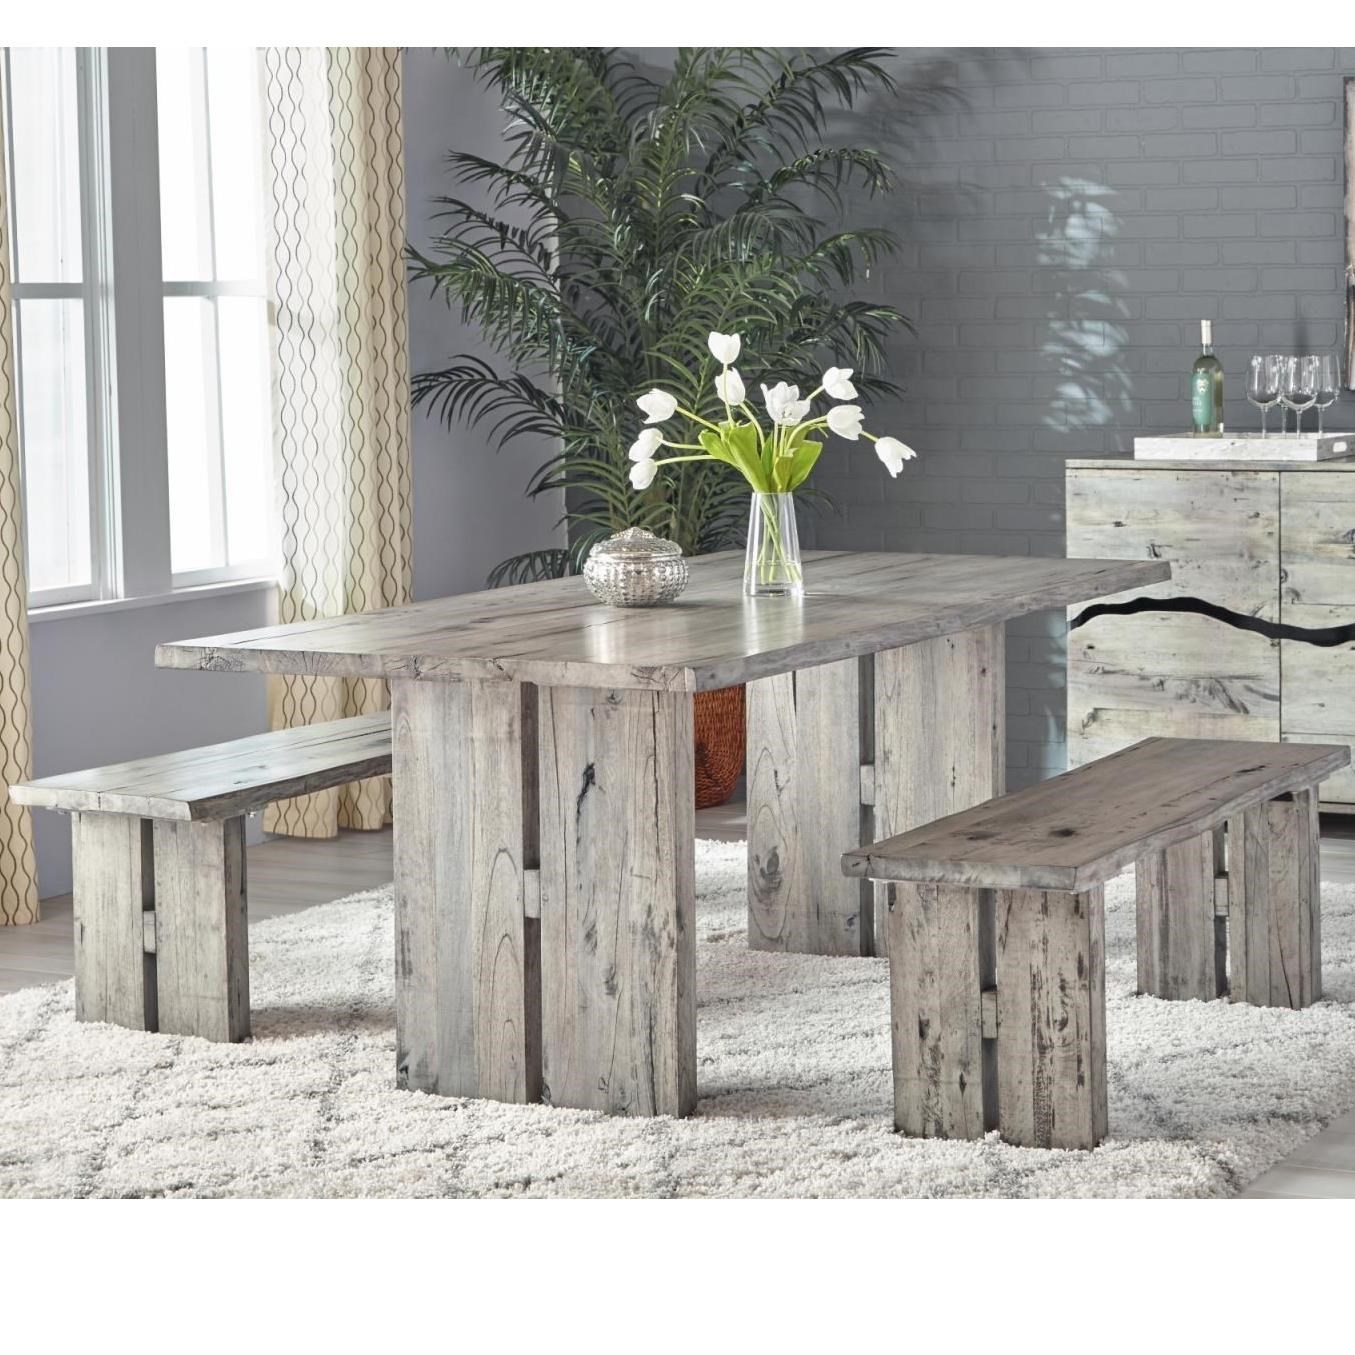 Napa Furniture Designs Renewal By Napa Rustic Dining Set With Table And 2  Benches